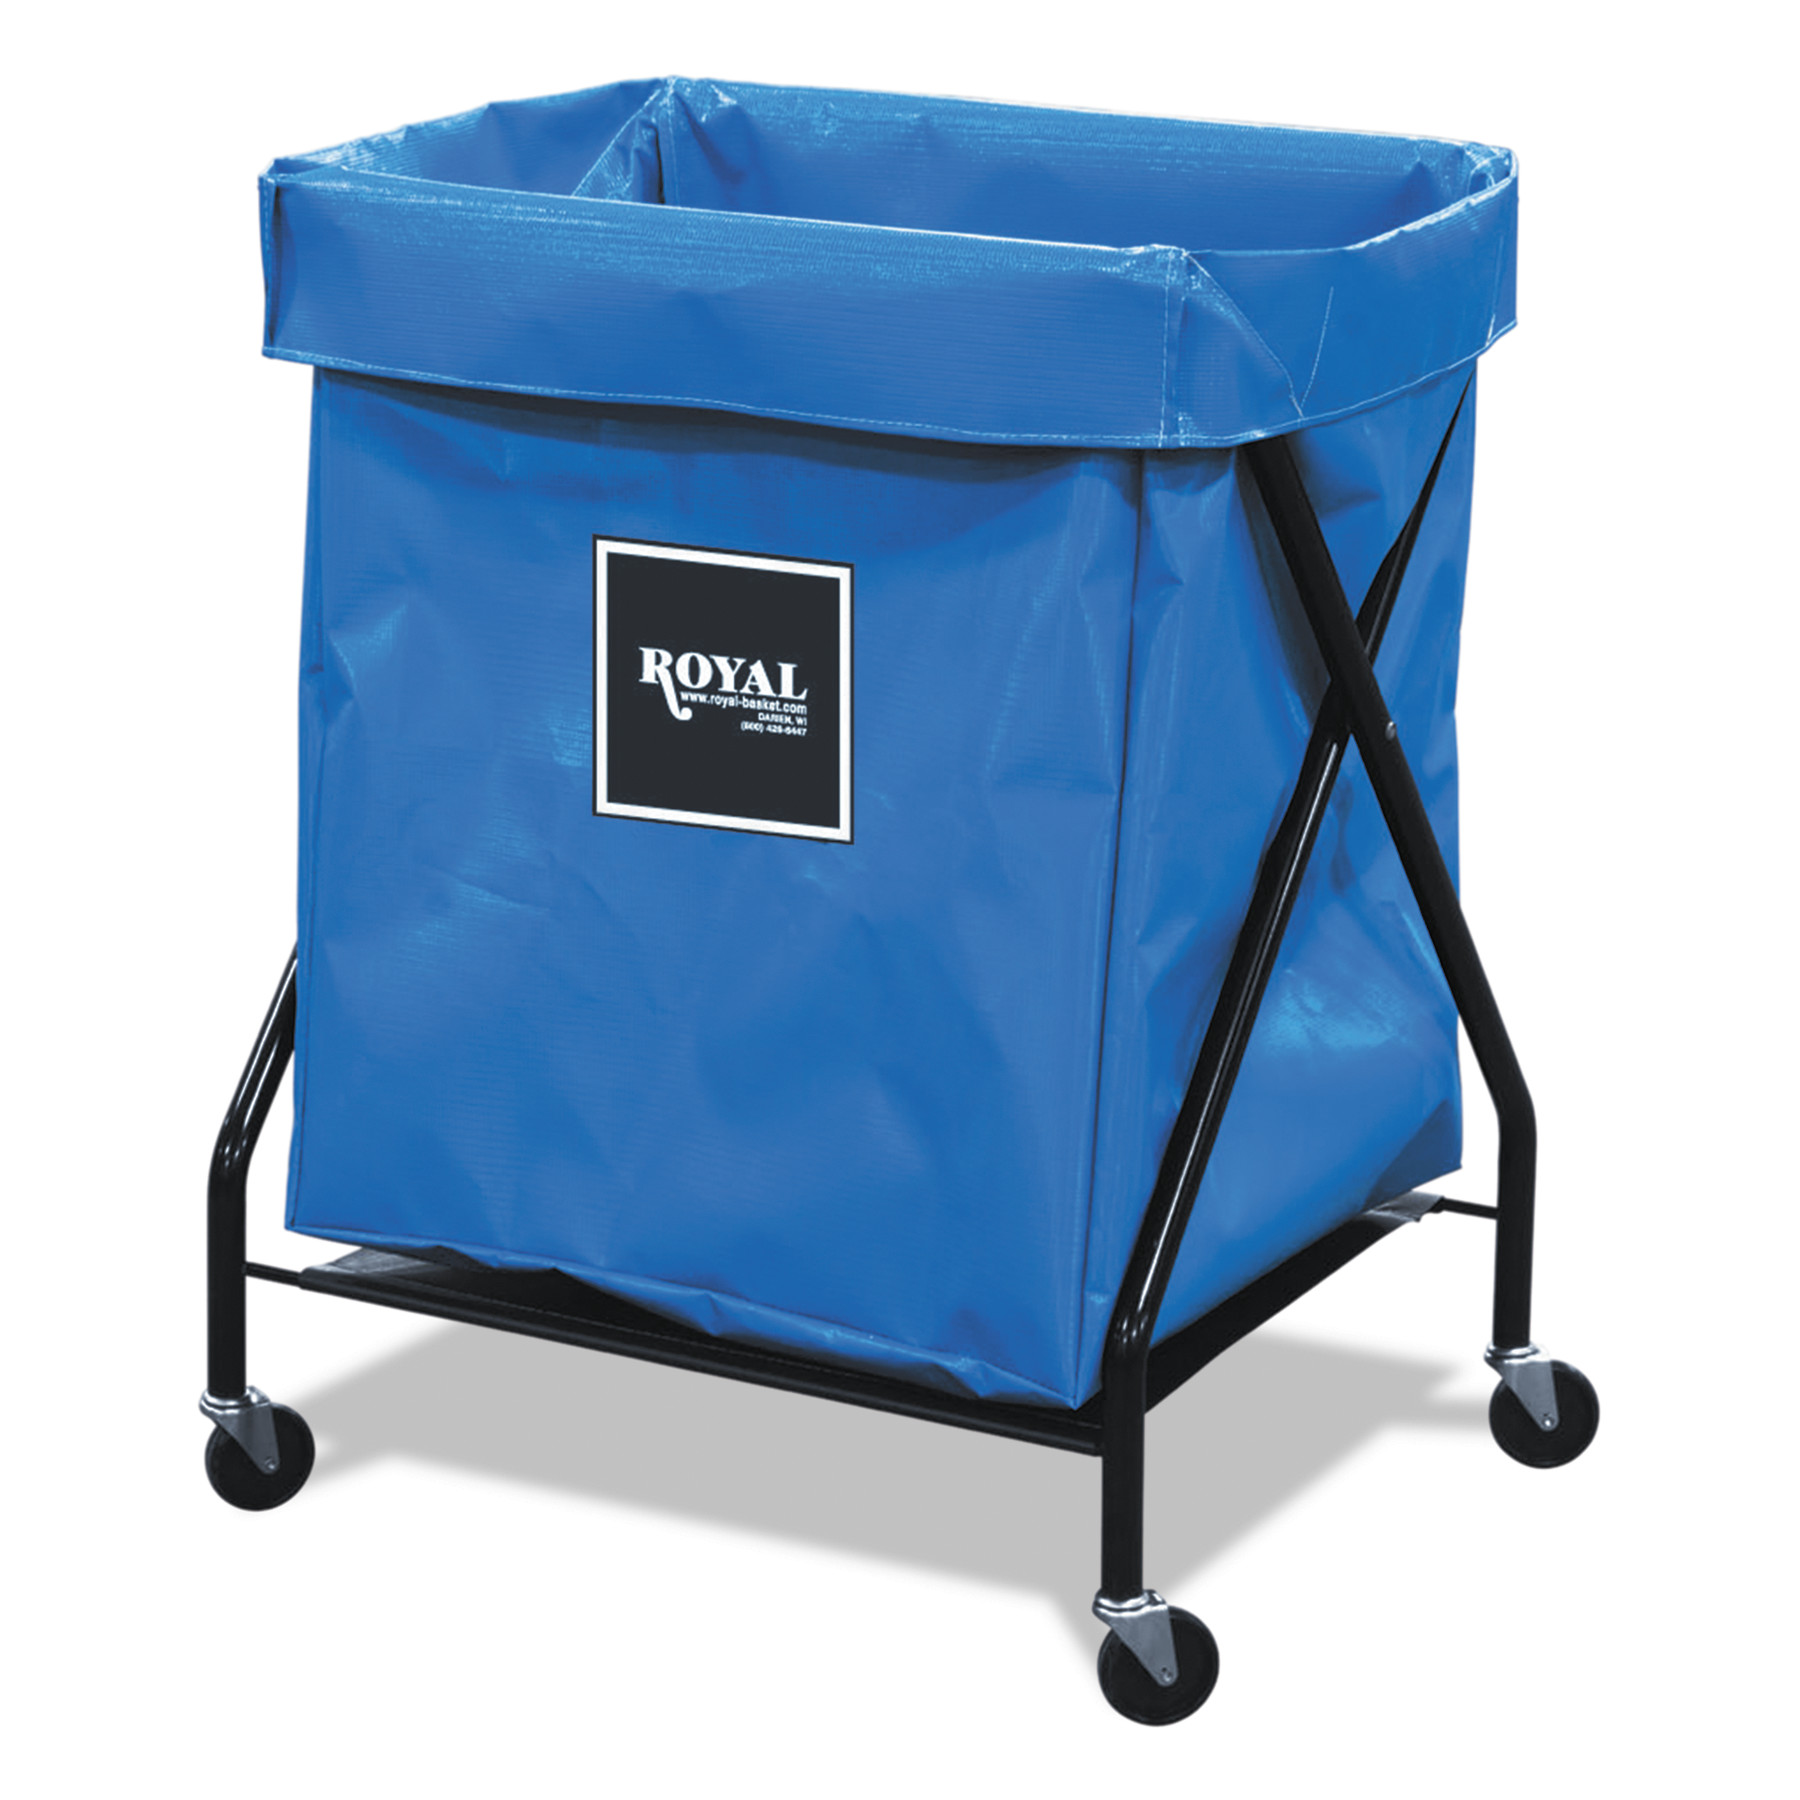 Royal Basket Trucks 8 Bushel X-Frame Cart with Vinyl Bag, 21 x 26 x 36, 150 lbs. Capacity, Blue